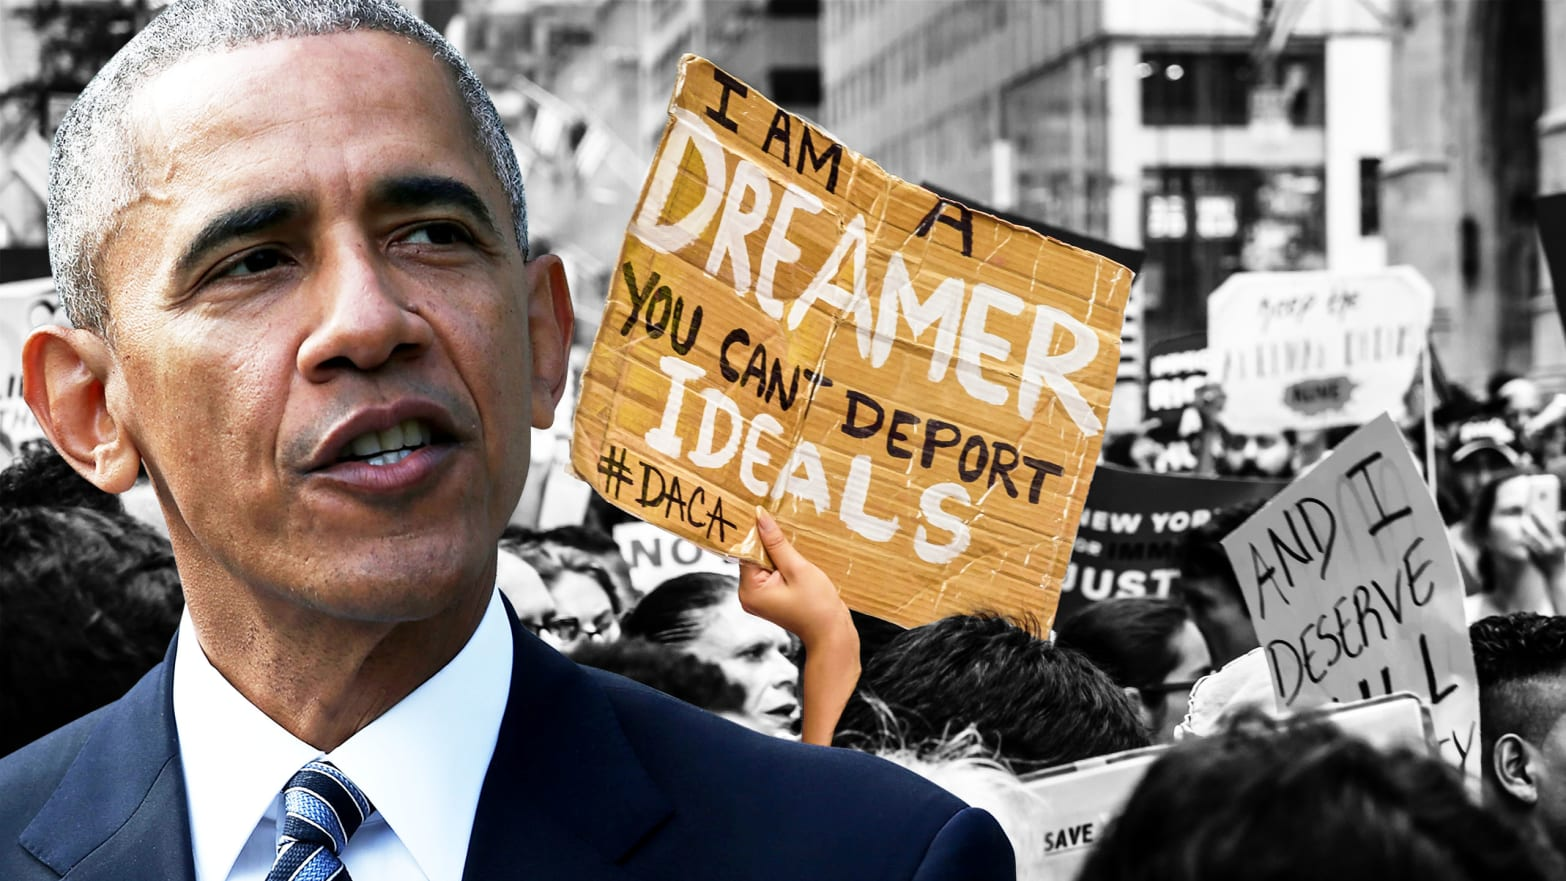 Barack Obama spoke out to defend undocumented immigrants who arrived in America as children.